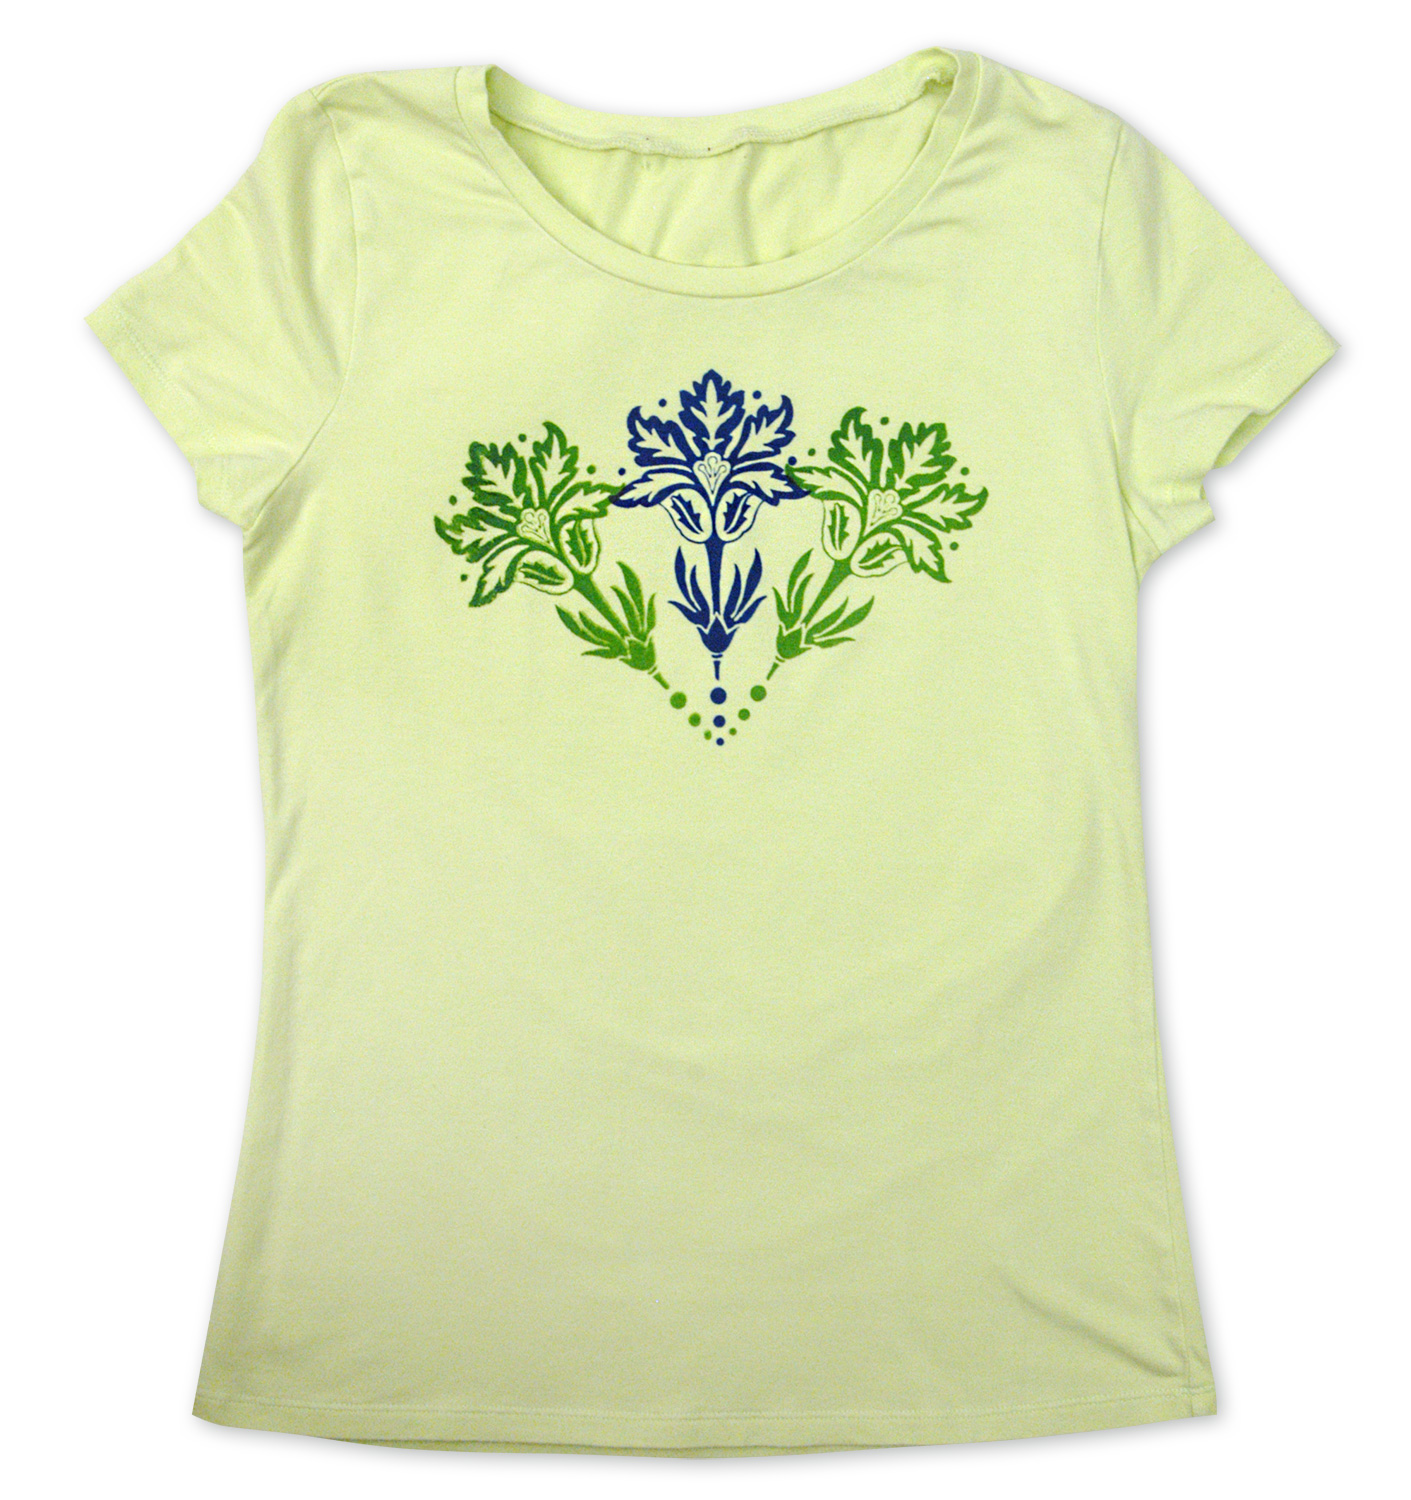 Semi-opaque colors on light t-shirt